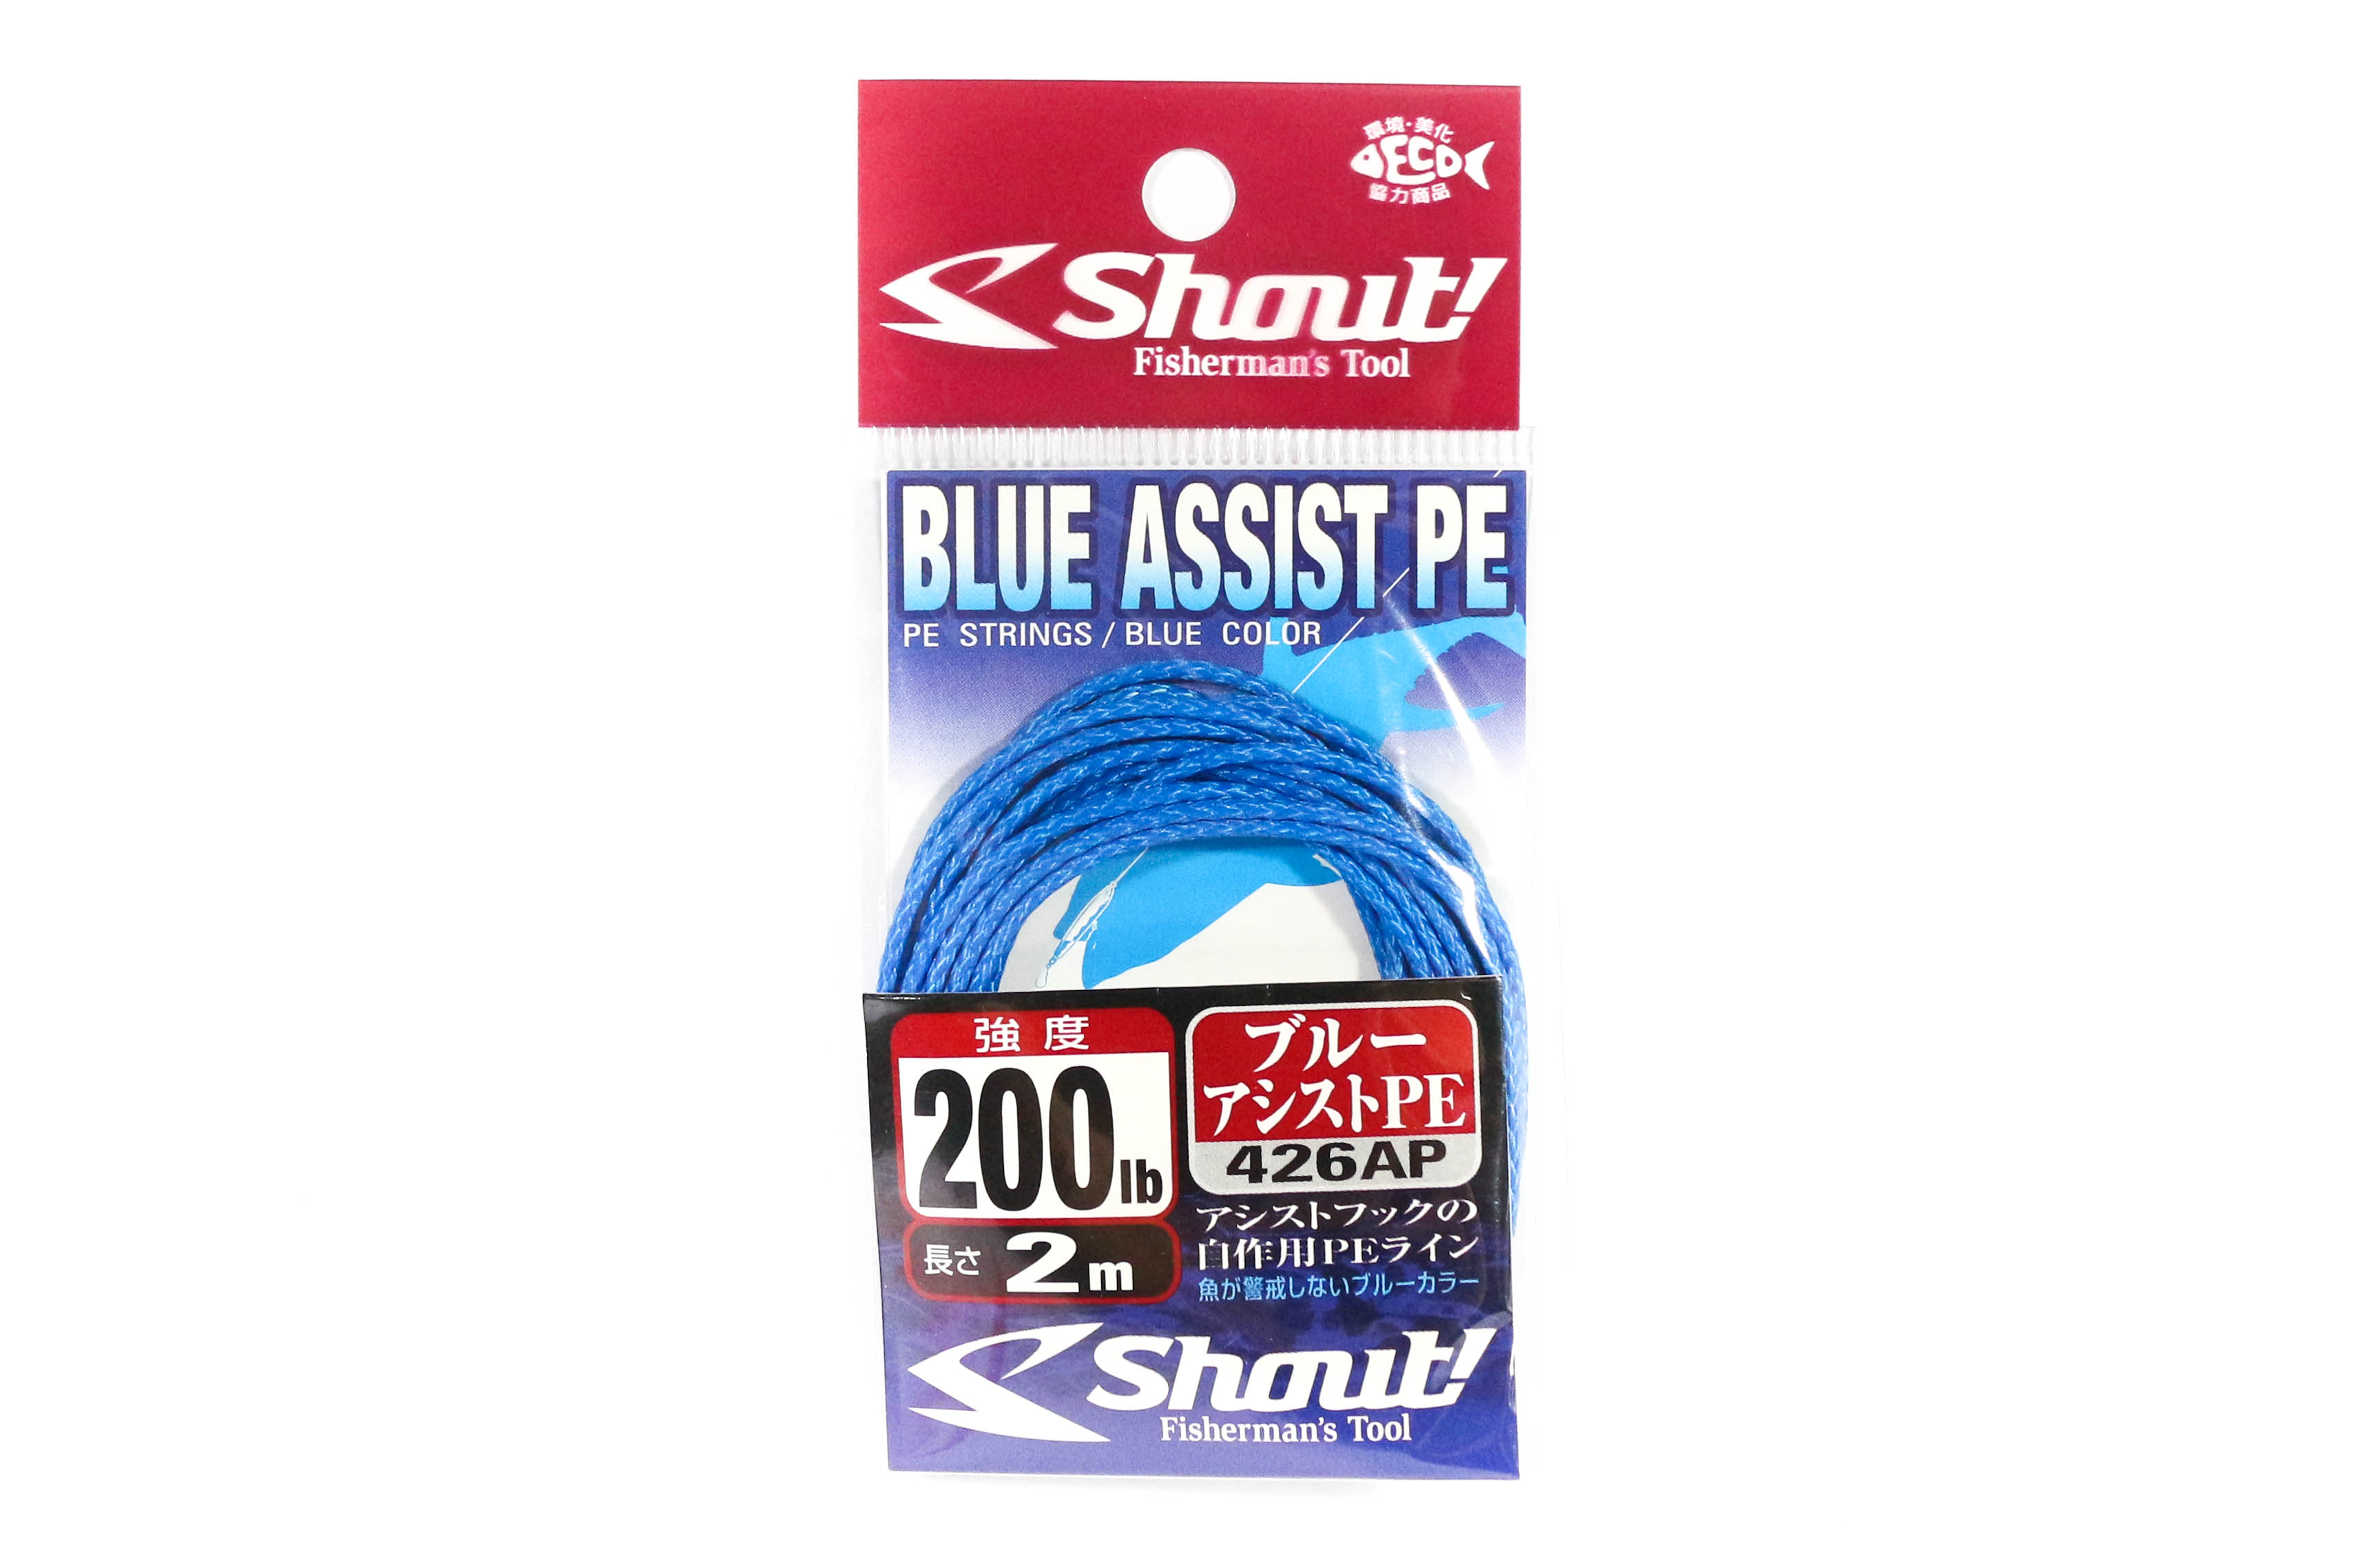 Shout 426-AP Blue Assist P.E Line Assist Rope Inner Core 2 meters 200LB (4688)